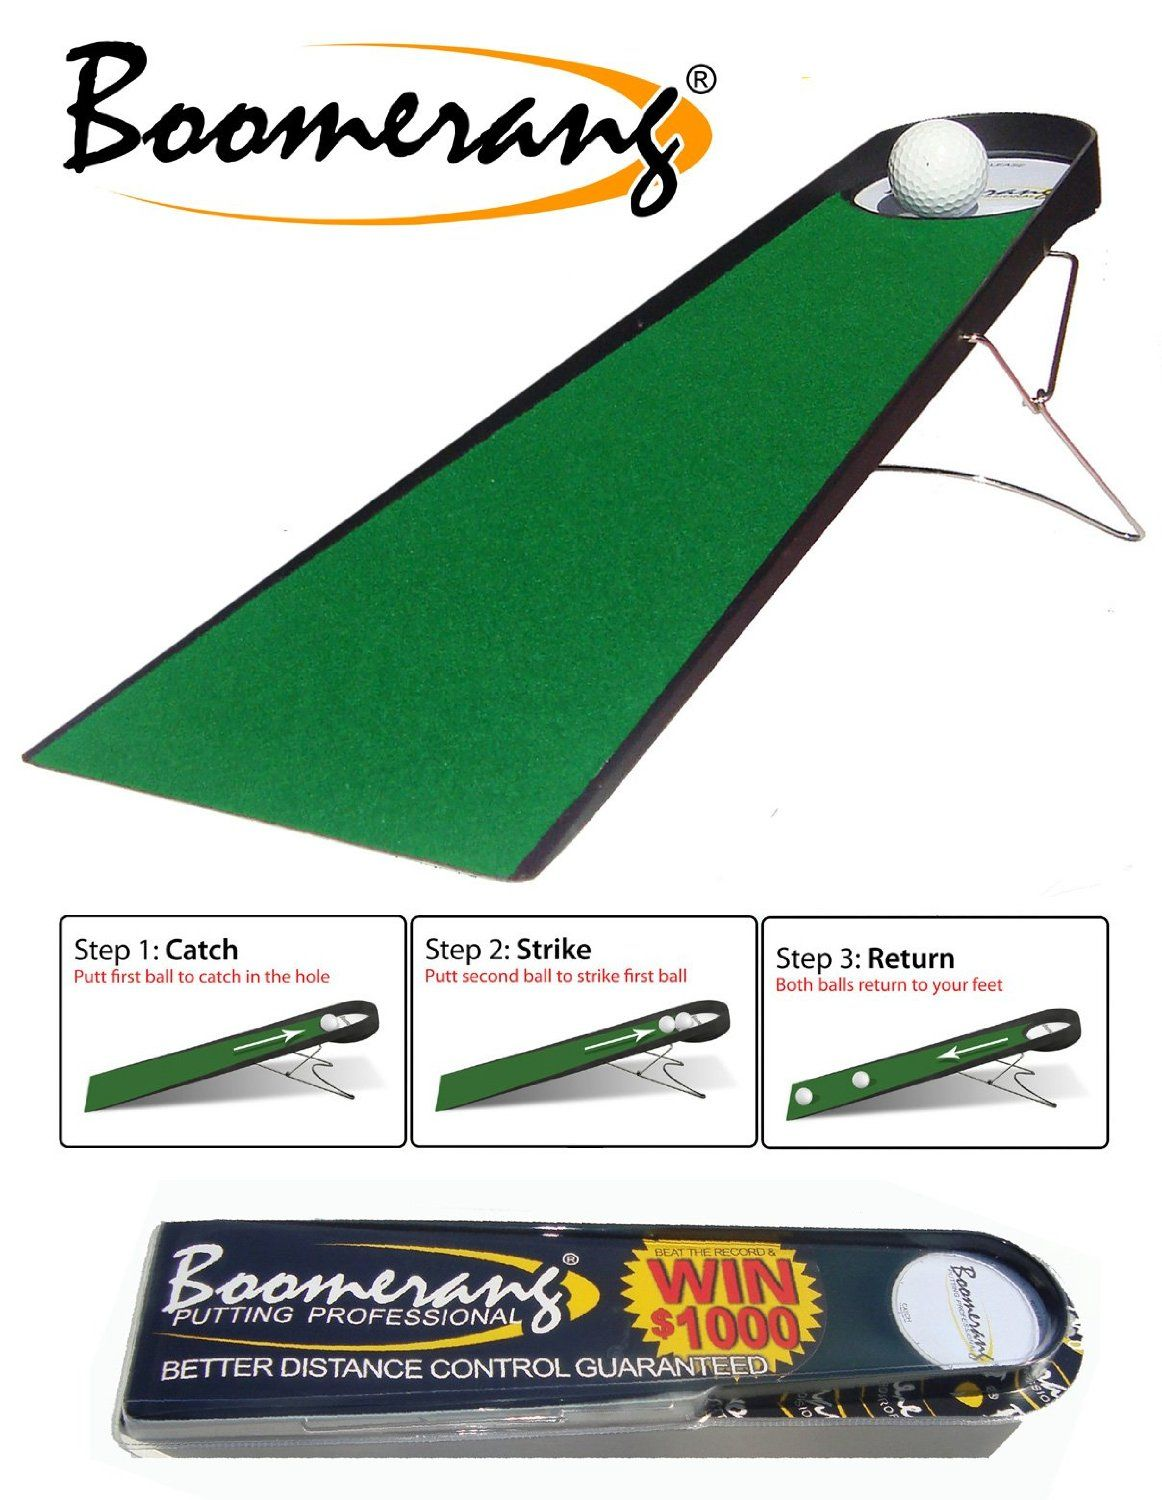 Including a 3m troon dual speed putting mat this putting pro indoor golf putting aid by Boomerang delivers very accurate feedback on your stroke